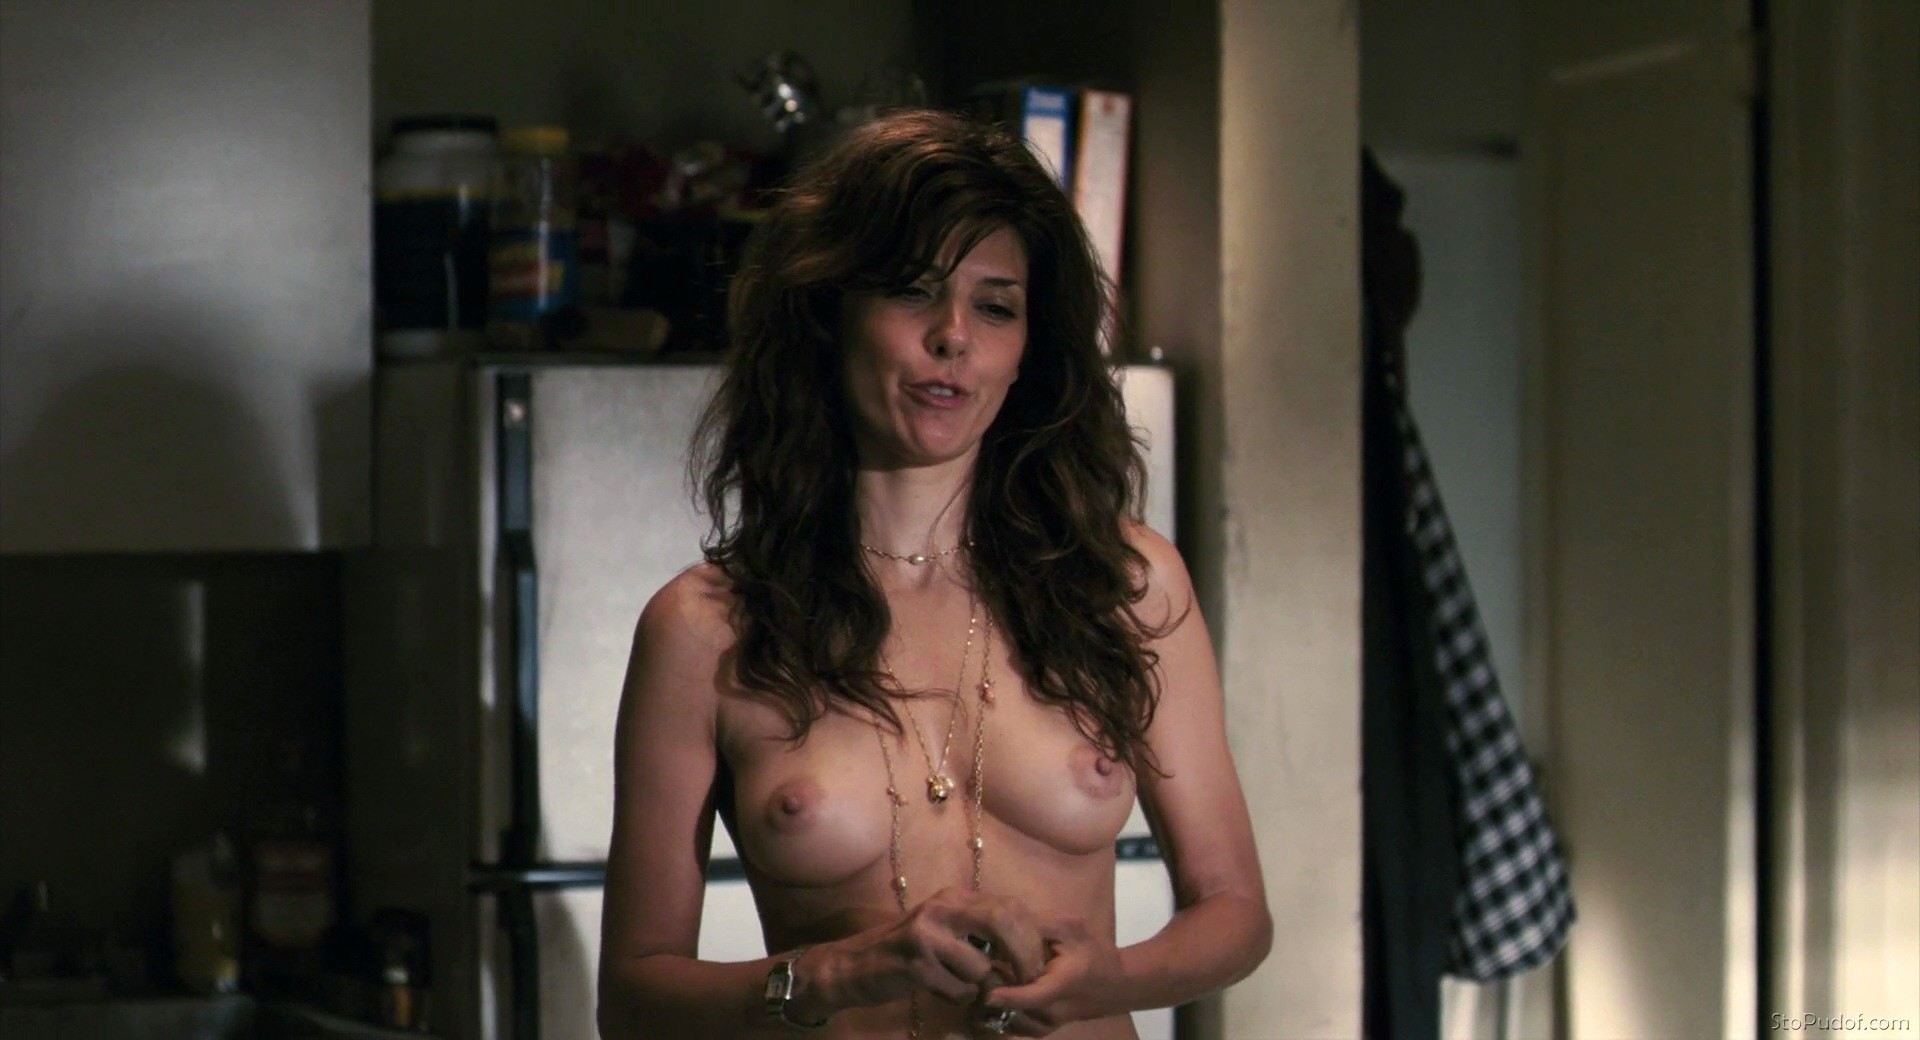 naked Marisa Tomei boobs - UkPhotoSafari